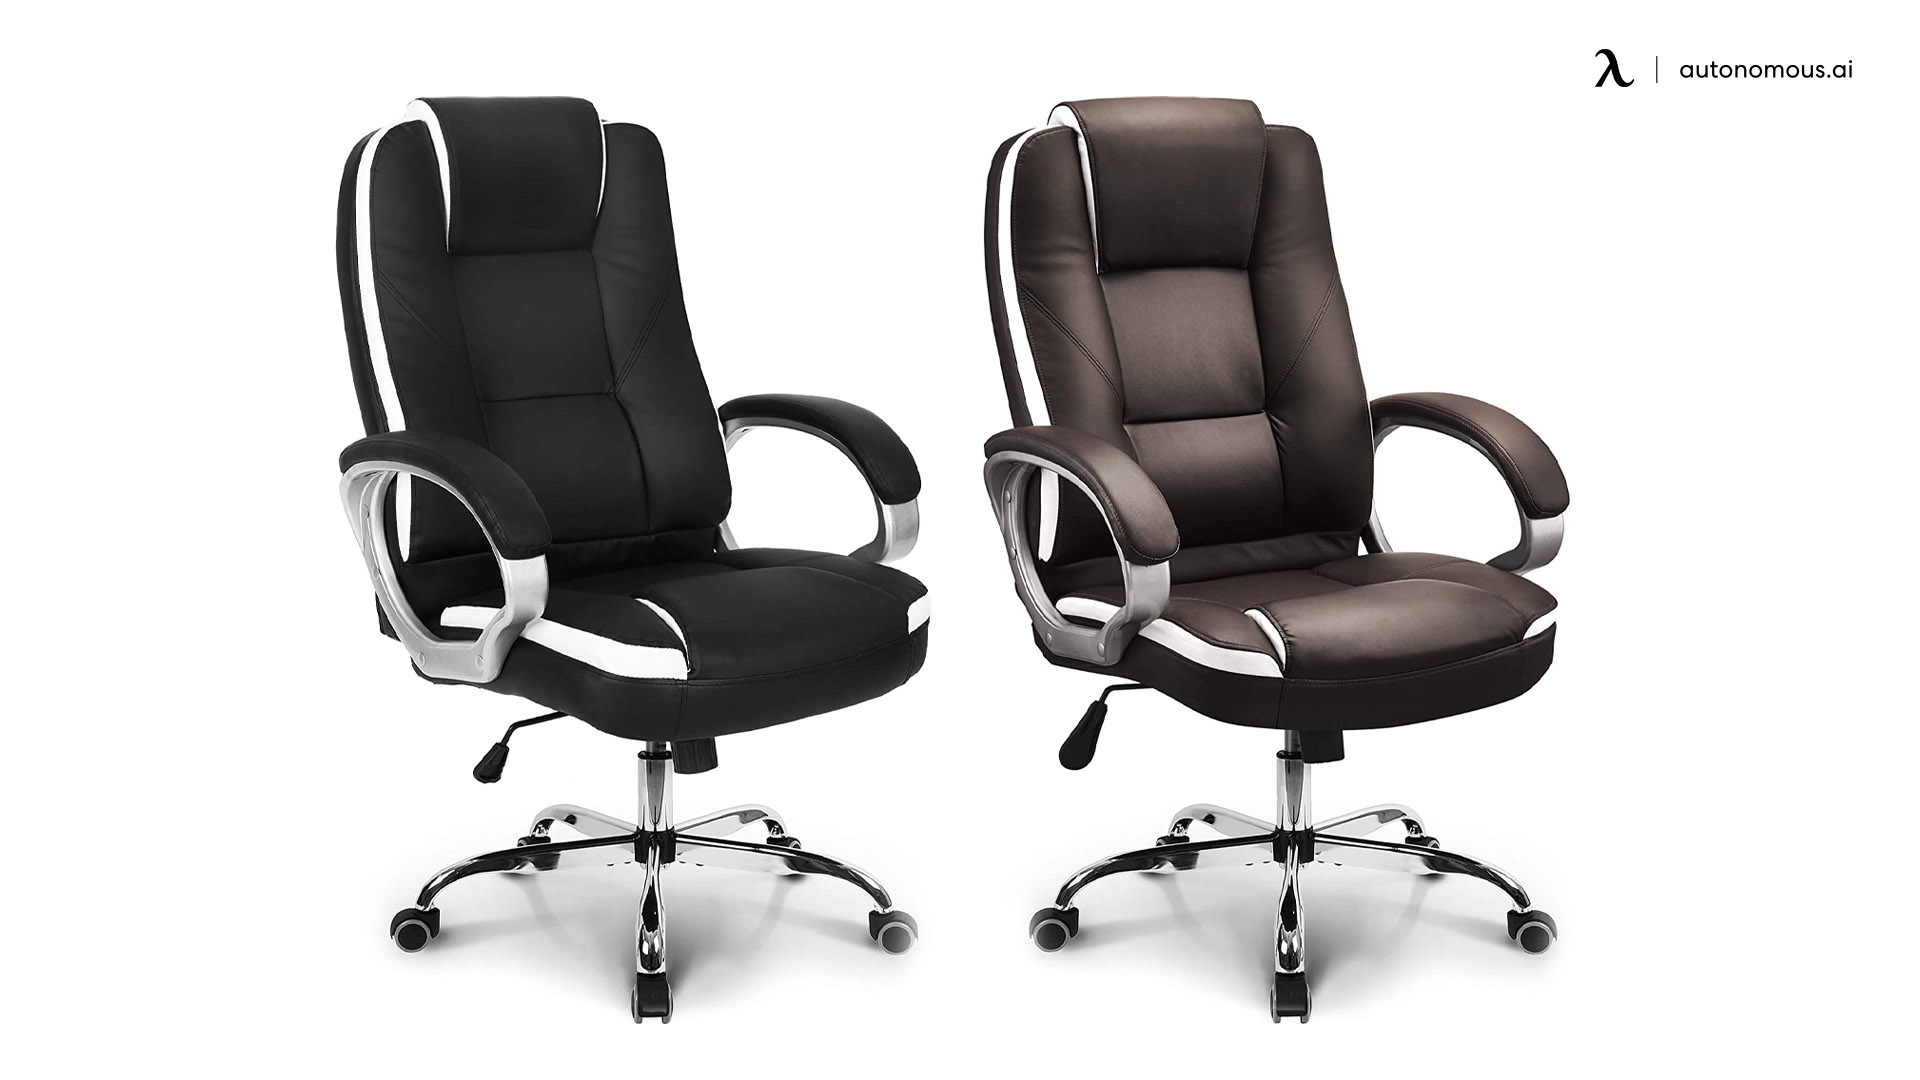 NEO Cheap Comfortable Office Chair